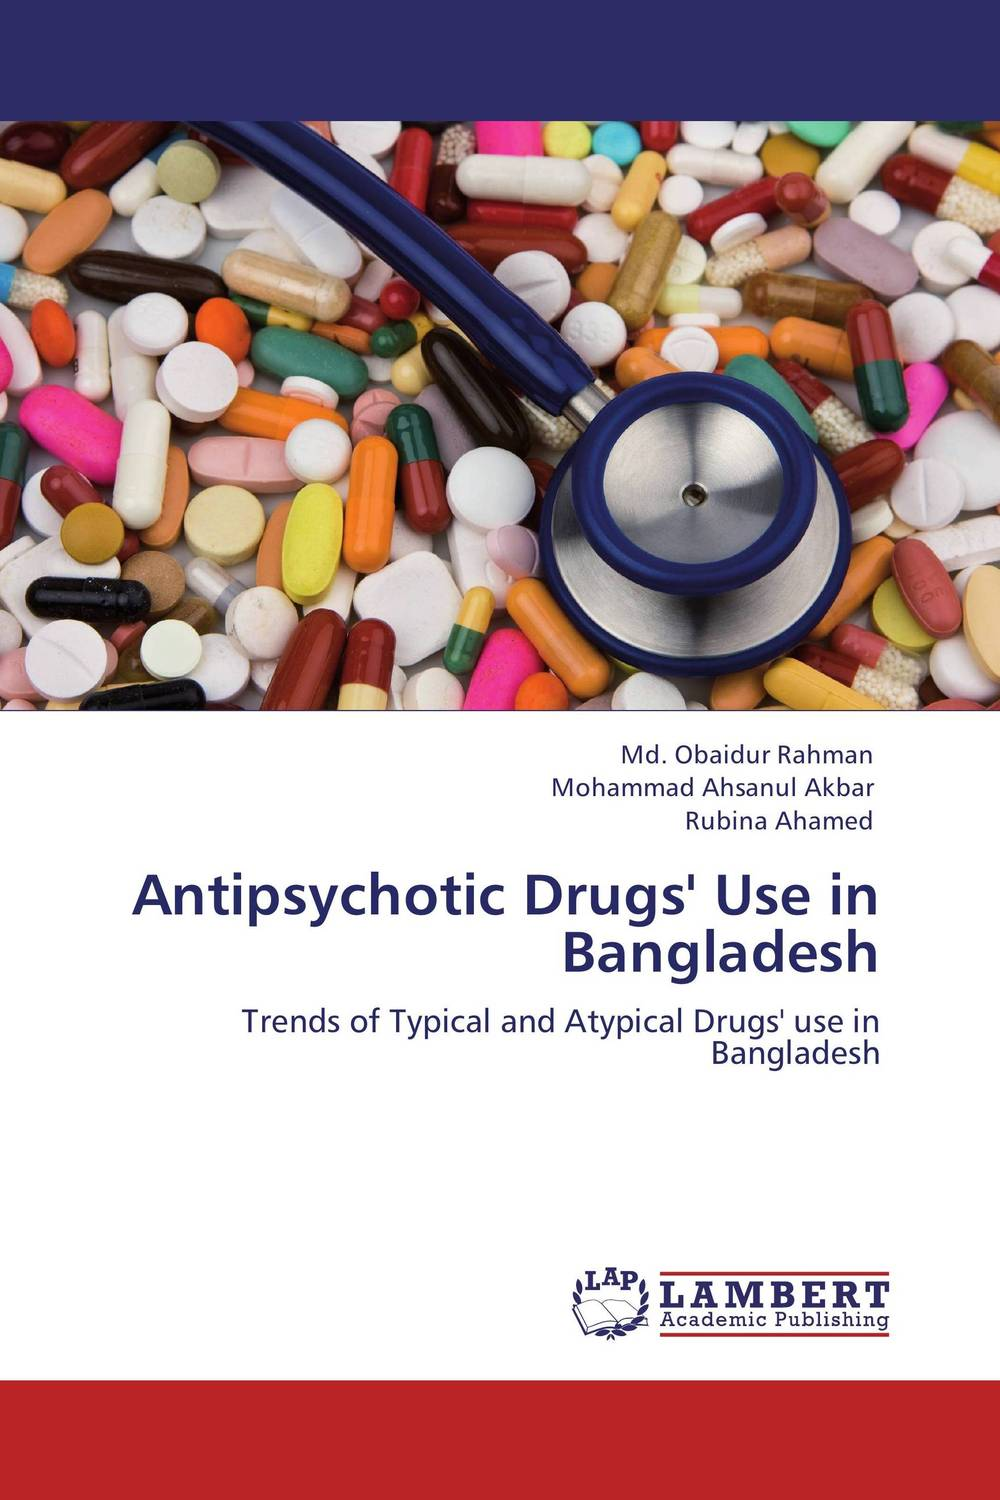 Antipsychotic Drugs' Use in Bangladesh santal psychiatric patients